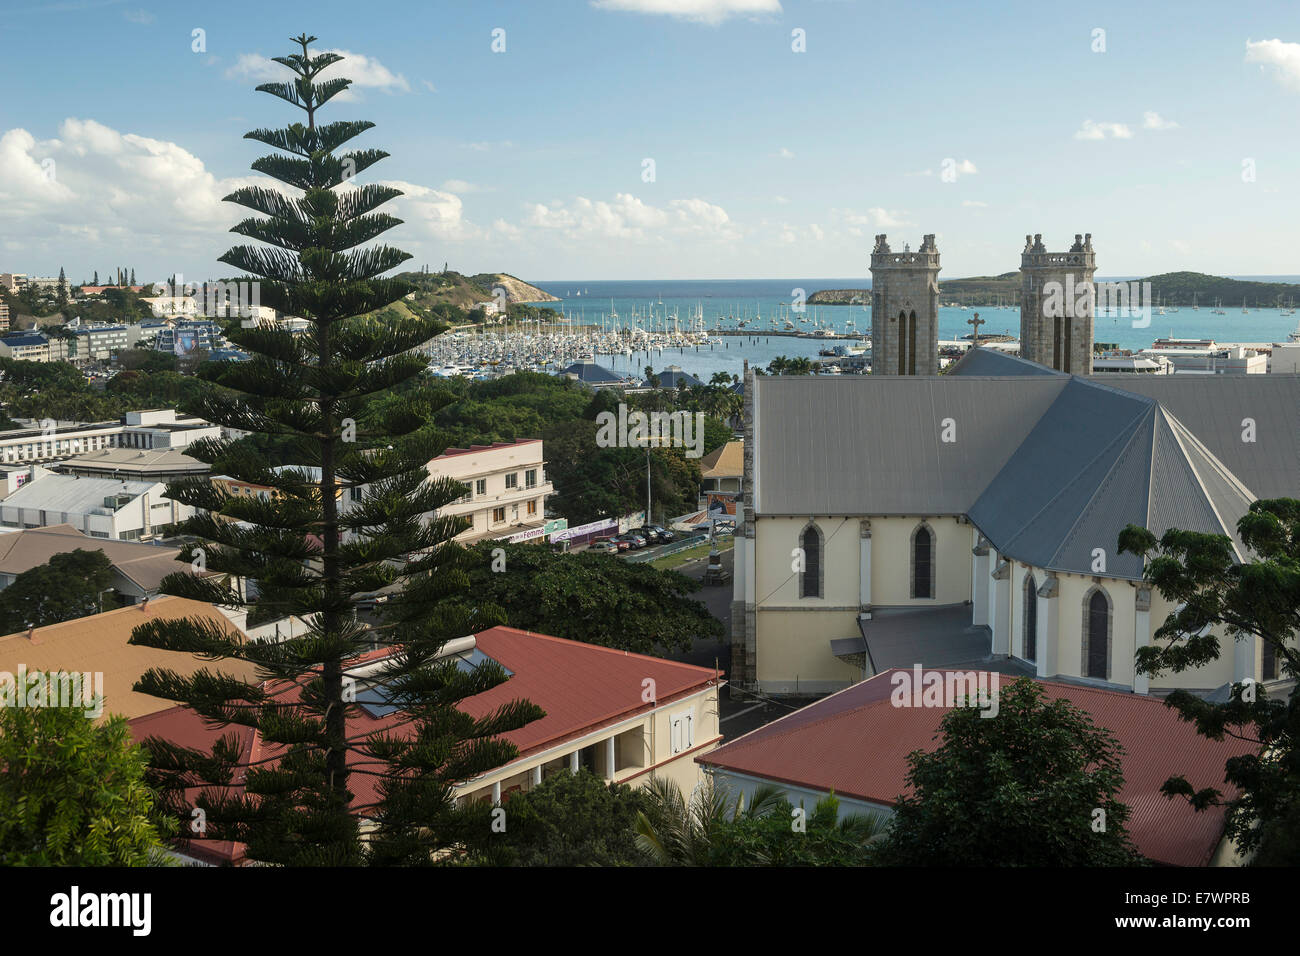 View across the harbour and Saint-Joseph Cathedral, Noumea, Grande Terre, New Caledonia - Stock Image